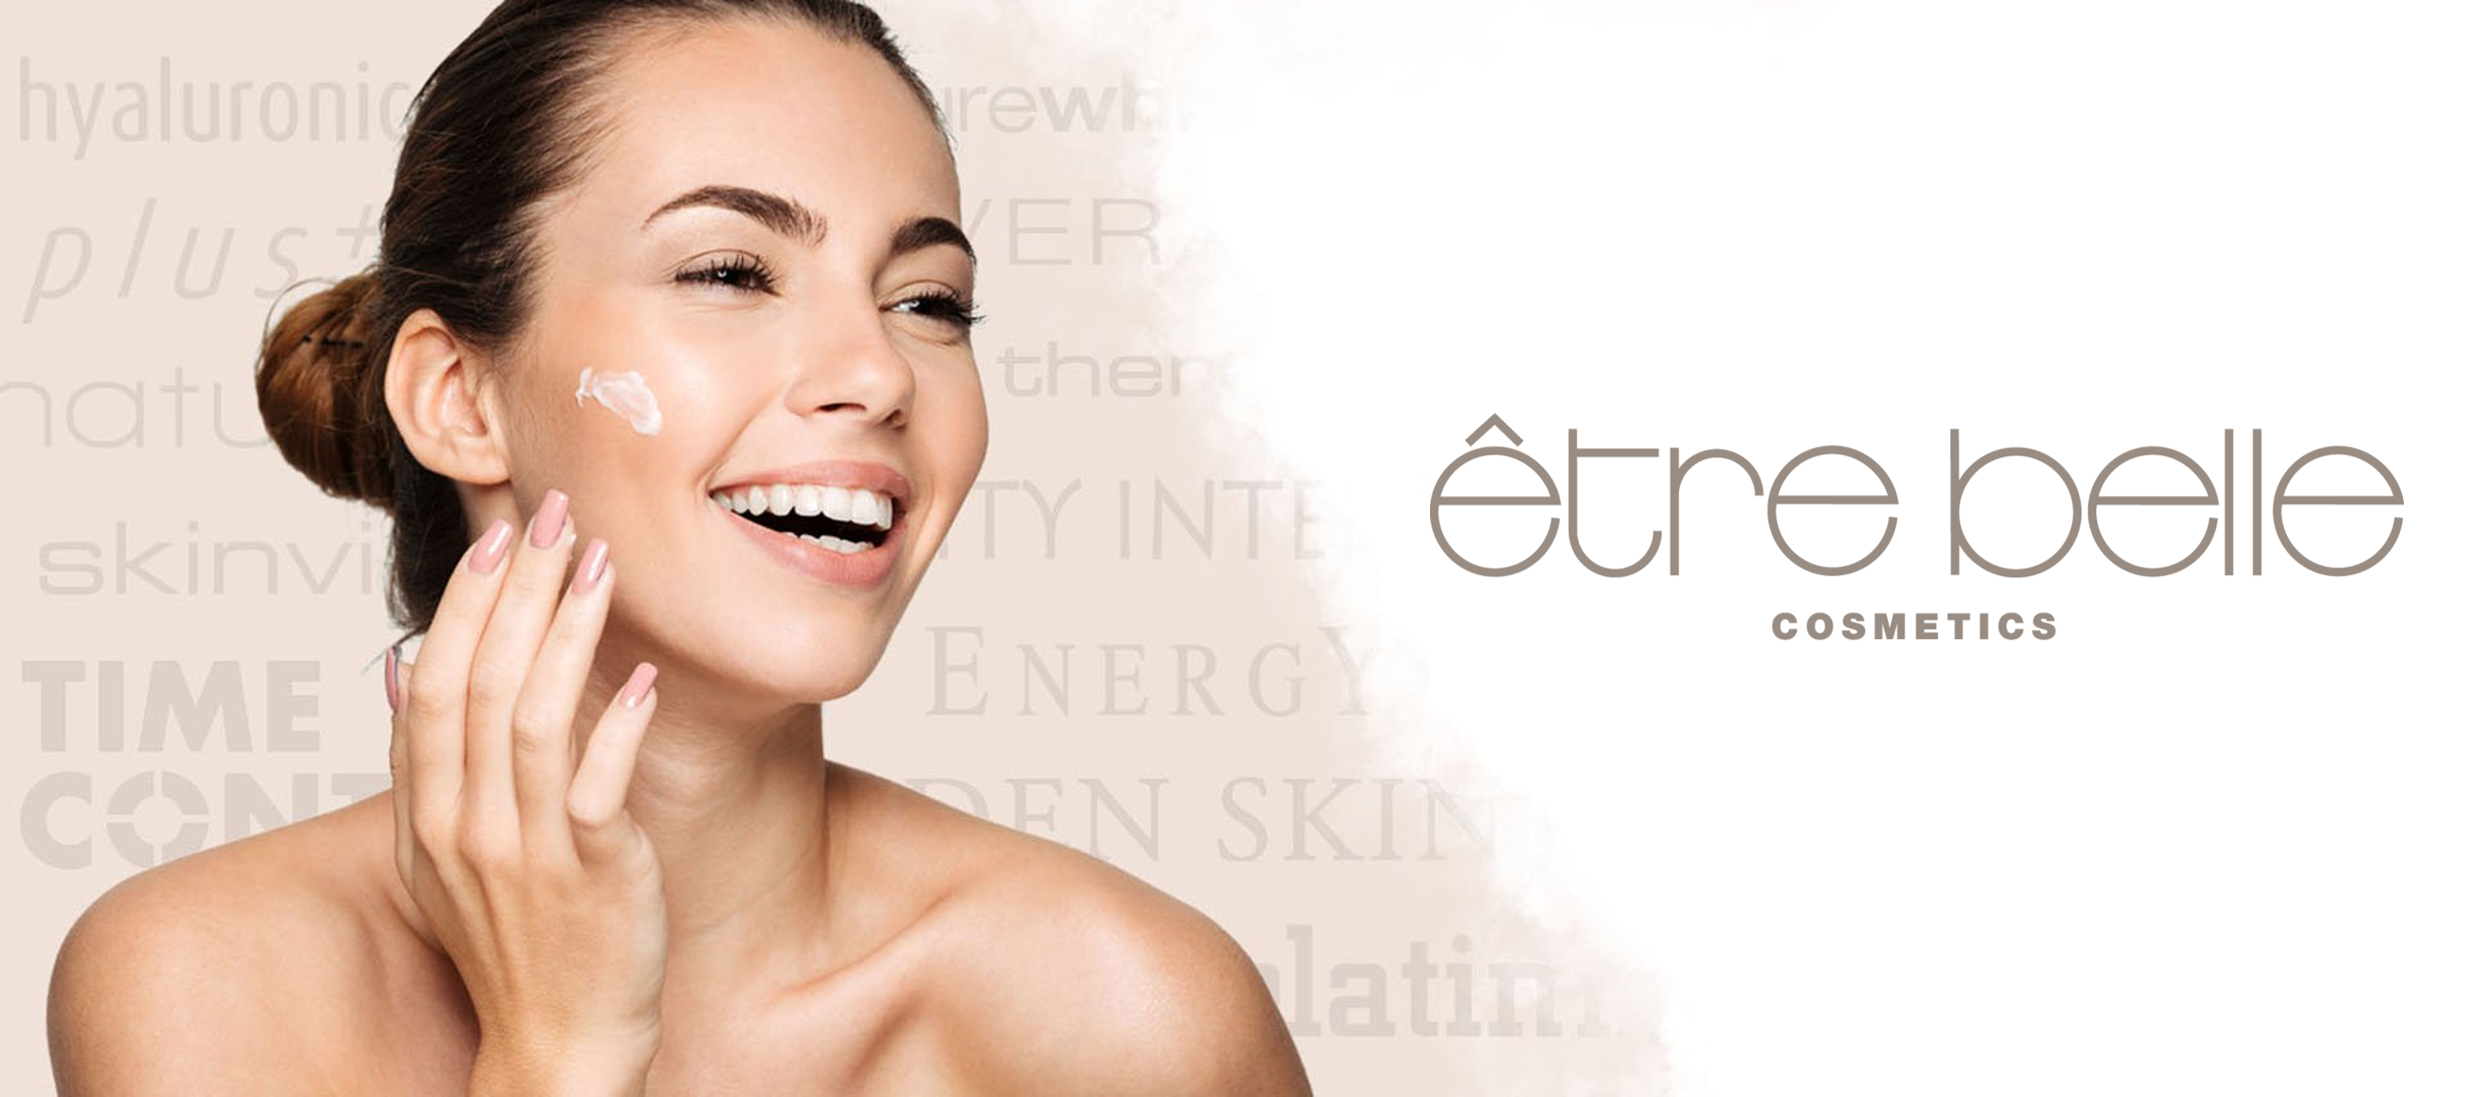 eb-skincare-category-banner.png